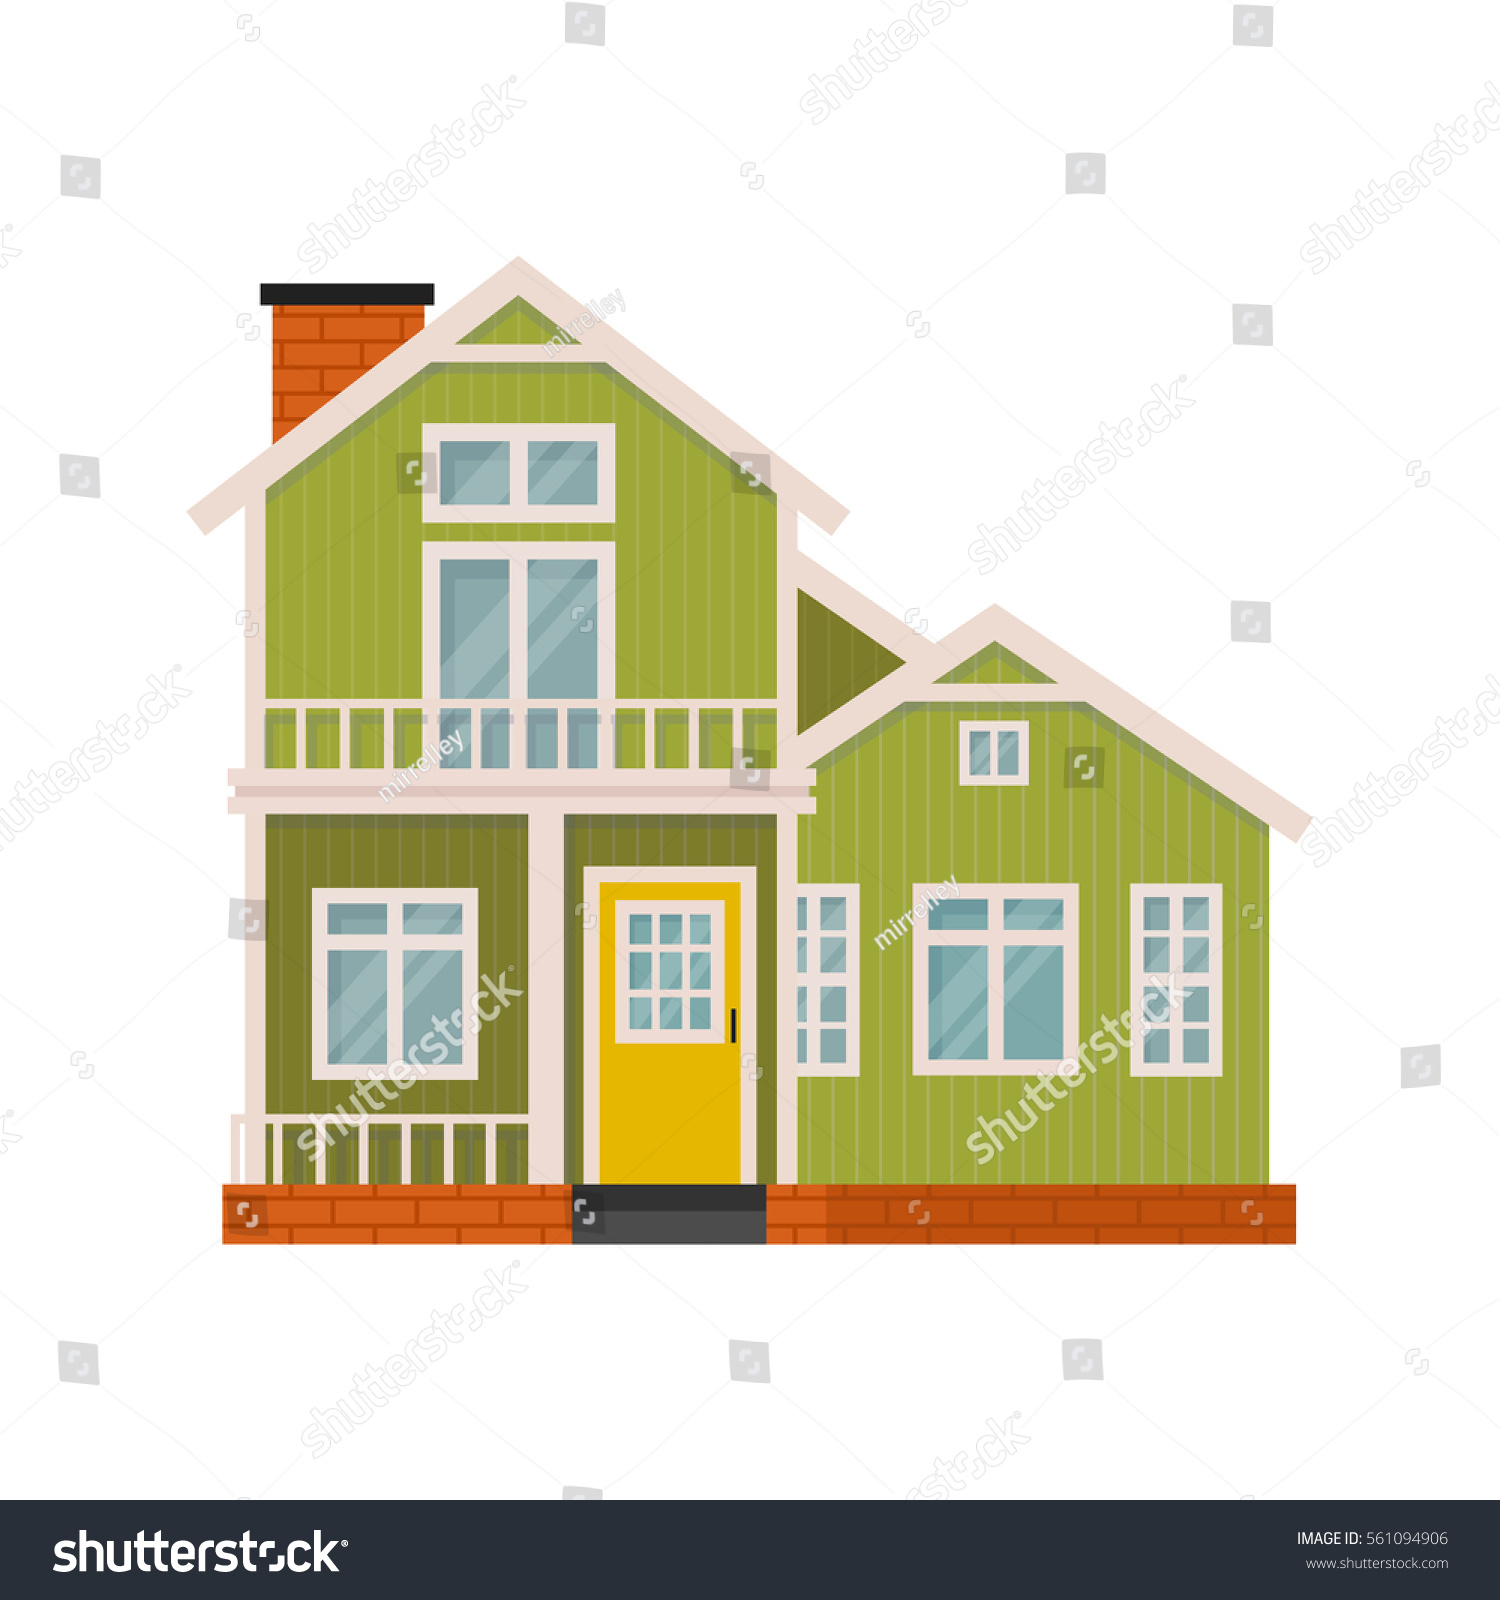 House design cartoon - Illustration Of Cute Cartoon House Facade Simple Colorful House In Flat Style Little Green